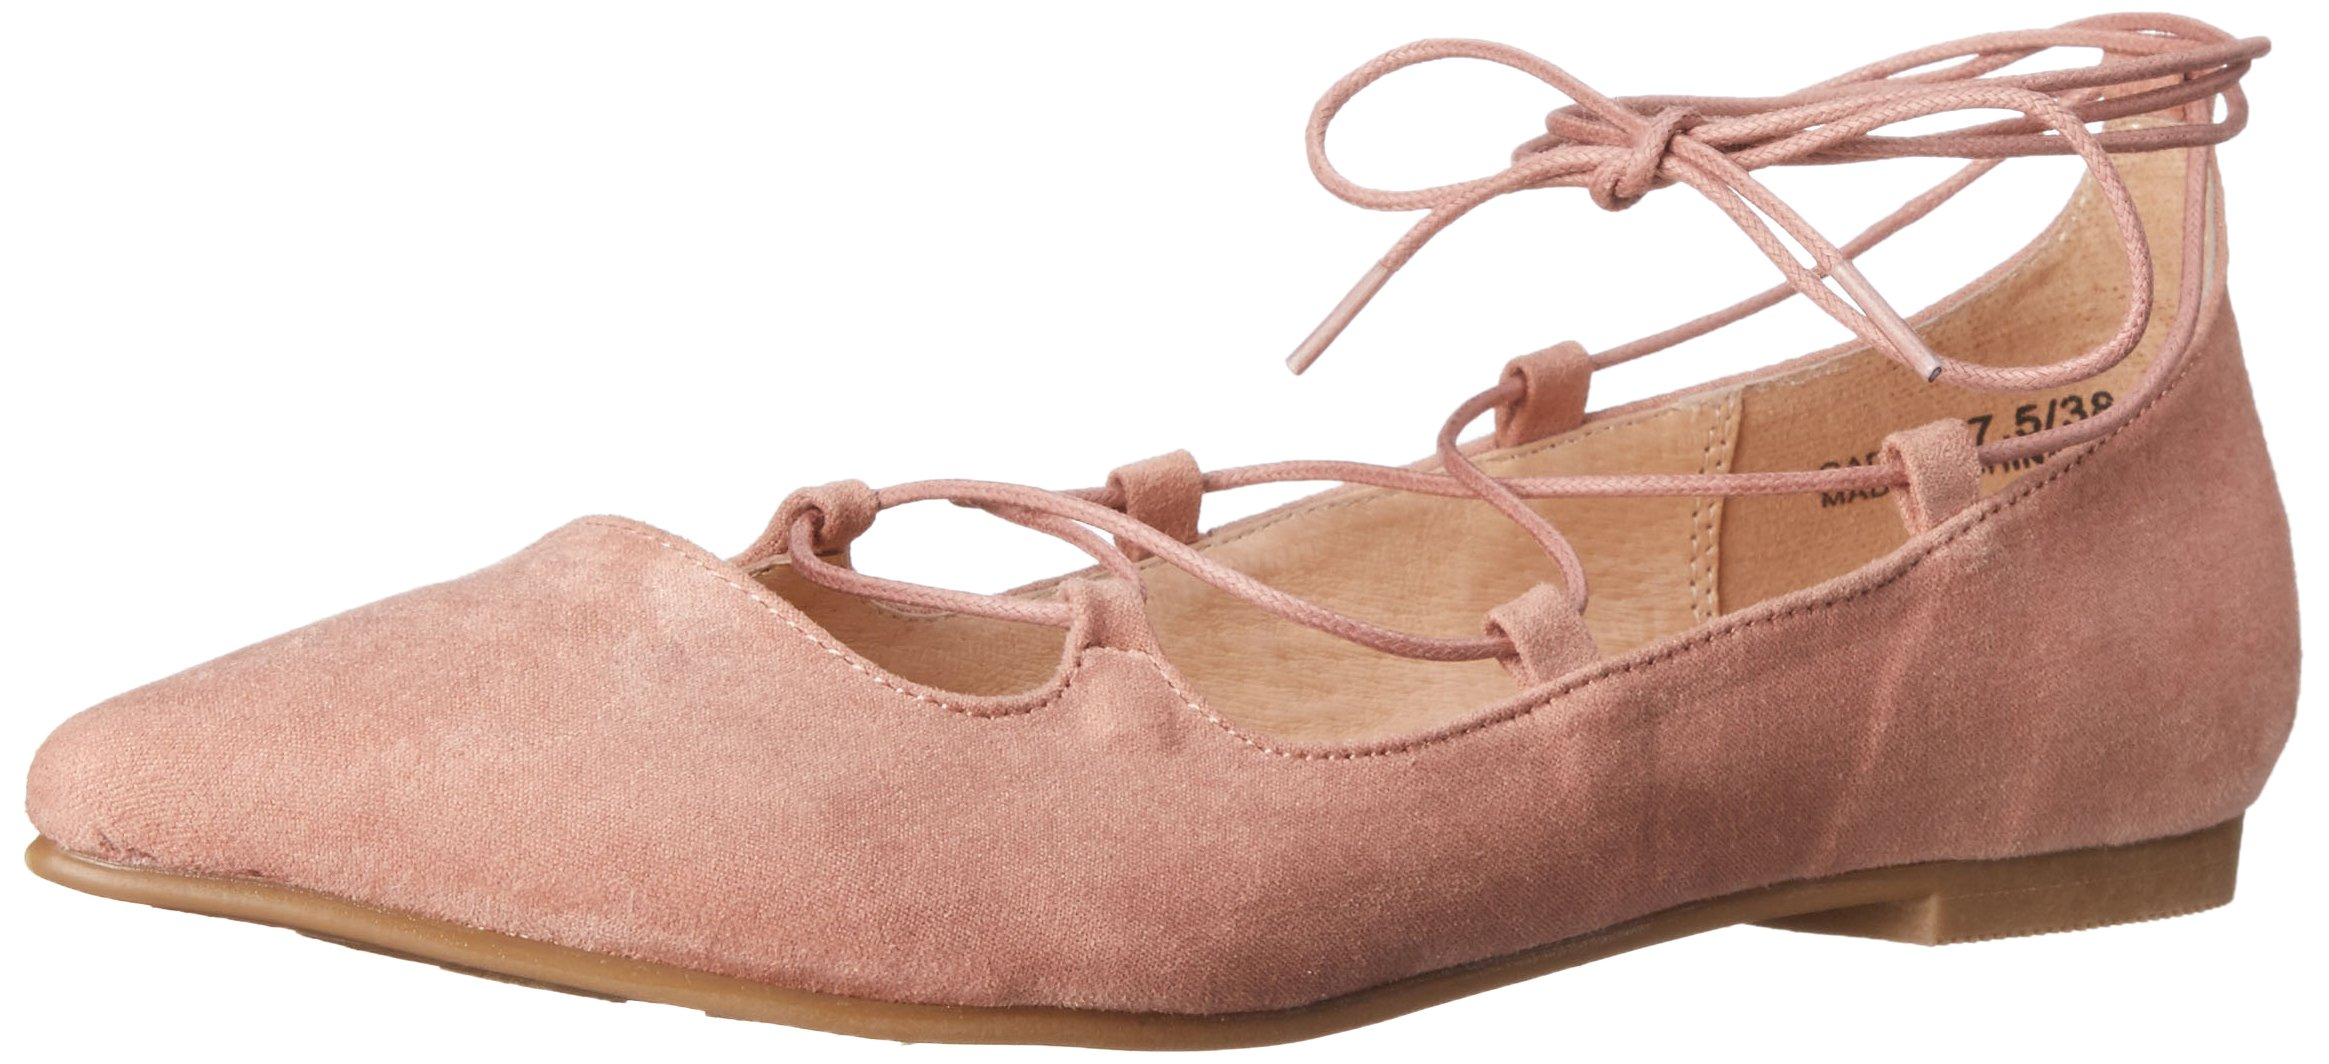 Chinese Laundry Women's Endless Summer Ghillie Flat, Rose Suede,  8 M US